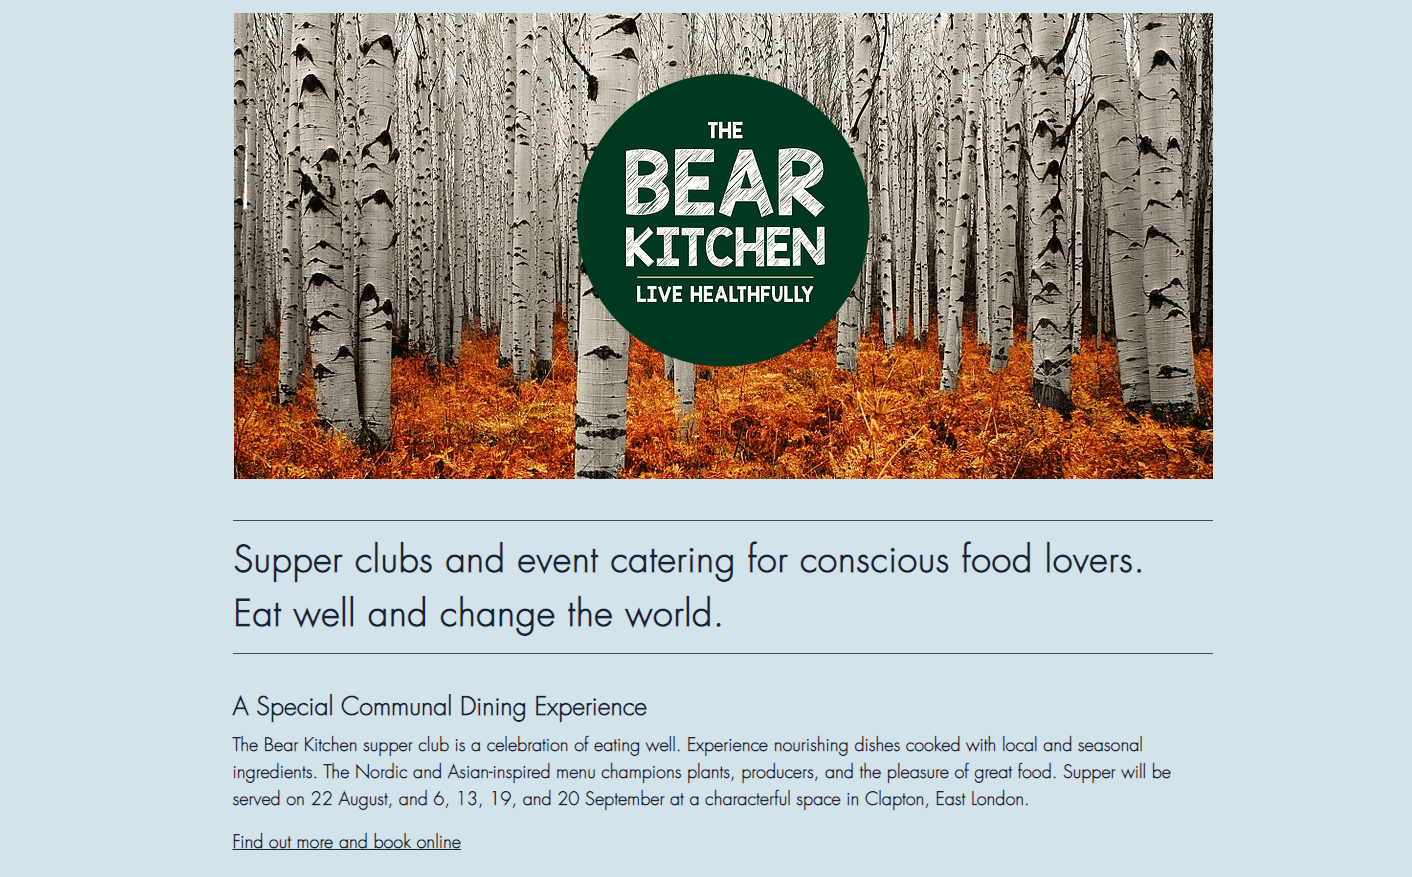 Screen Shot 2018 10 31 at 16.48.35 - The Bear Kitchen - Web, Flyer and Poster Copywriting